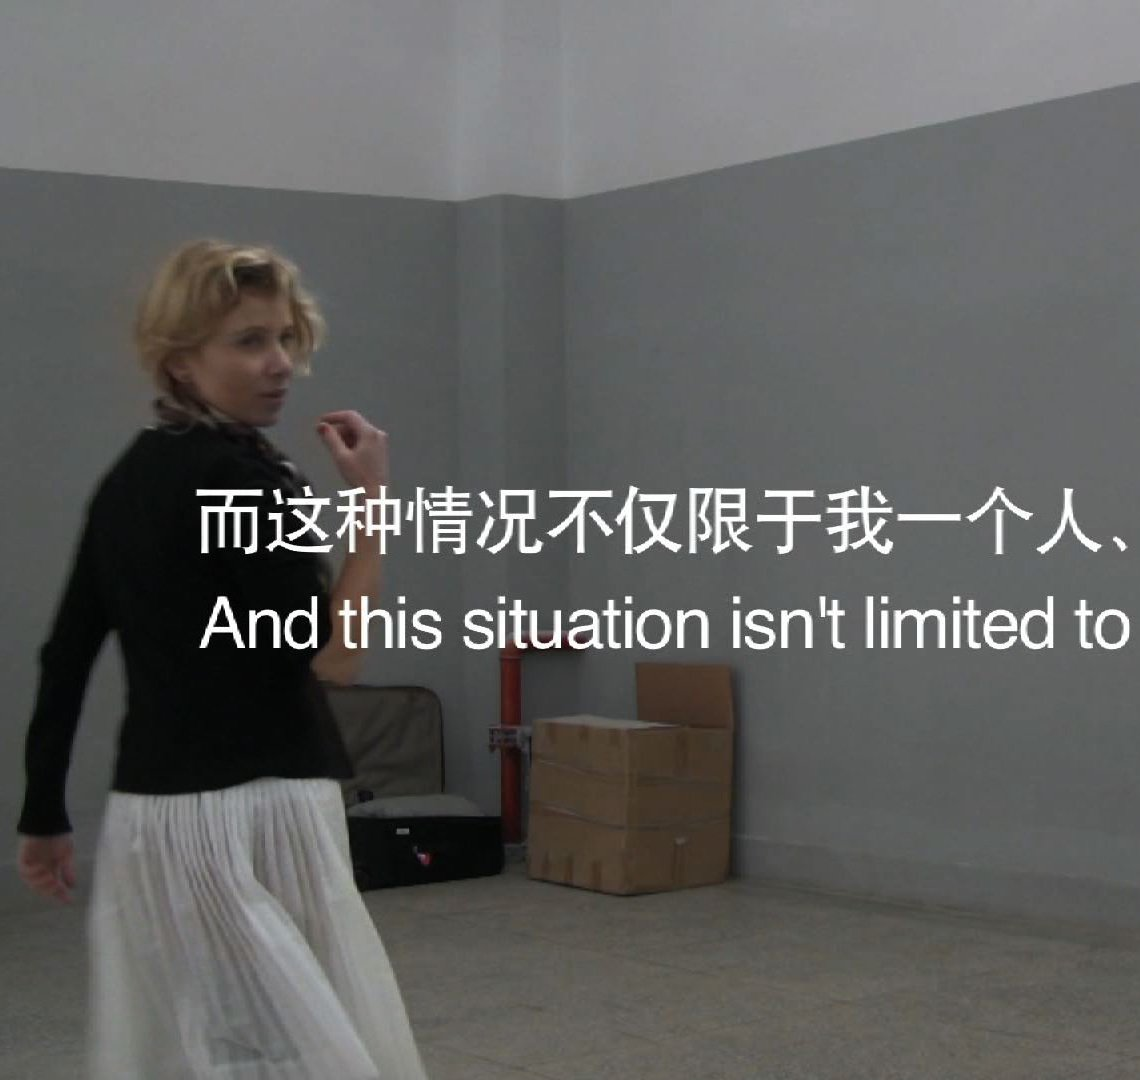 A still from my past art life, 'You know then', 2010, video and installation created with thanks to 943 Studio in Kunming.